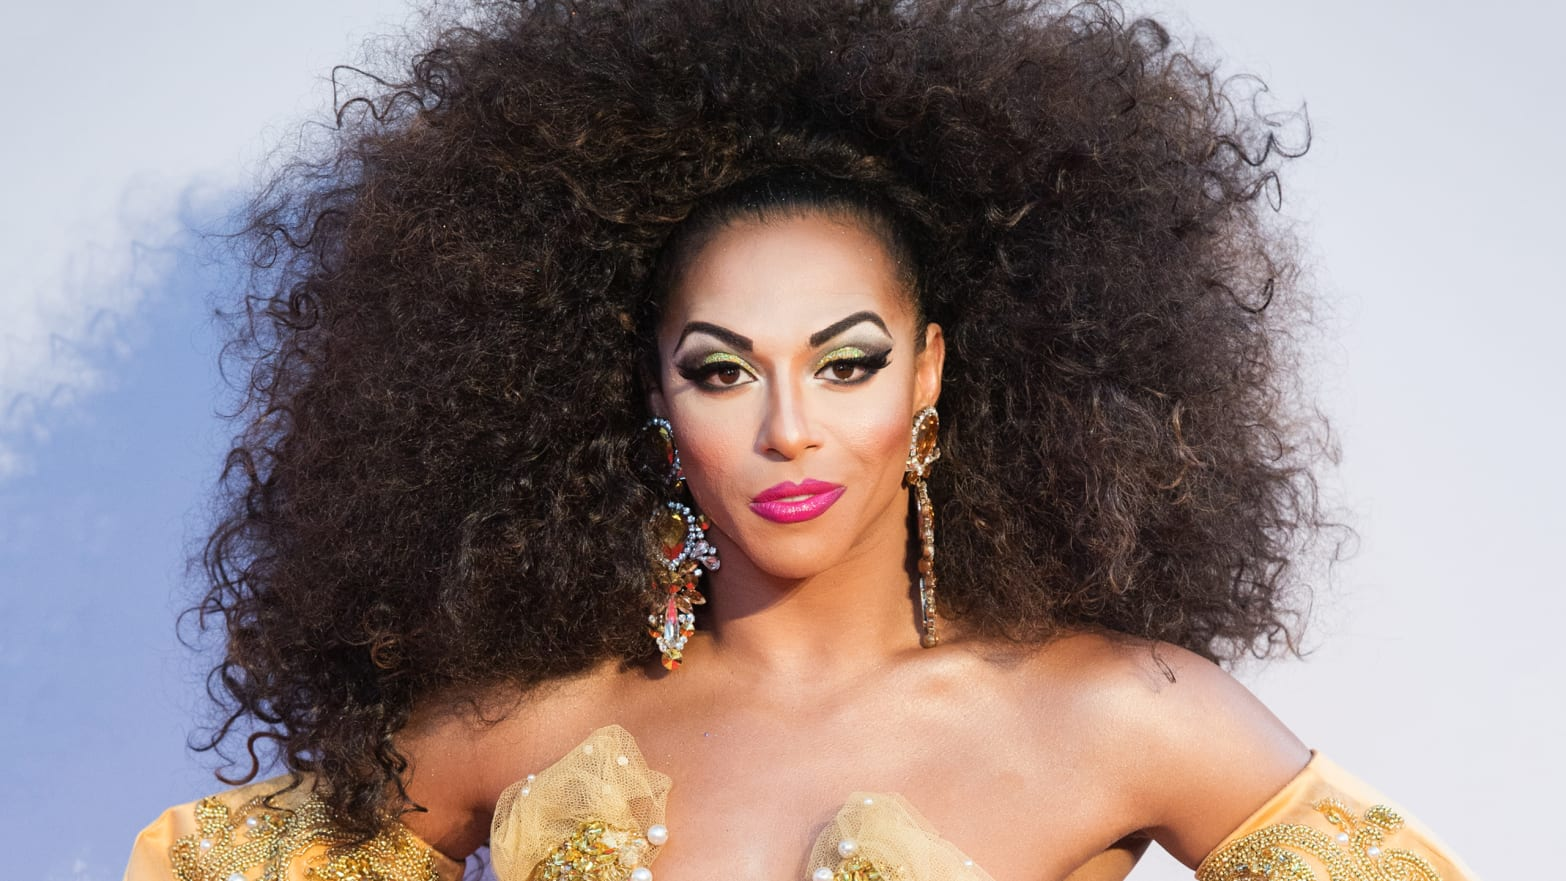 Meet Shangela The Drag Queen Lady Gaga Personally Cast In A Star Is Born